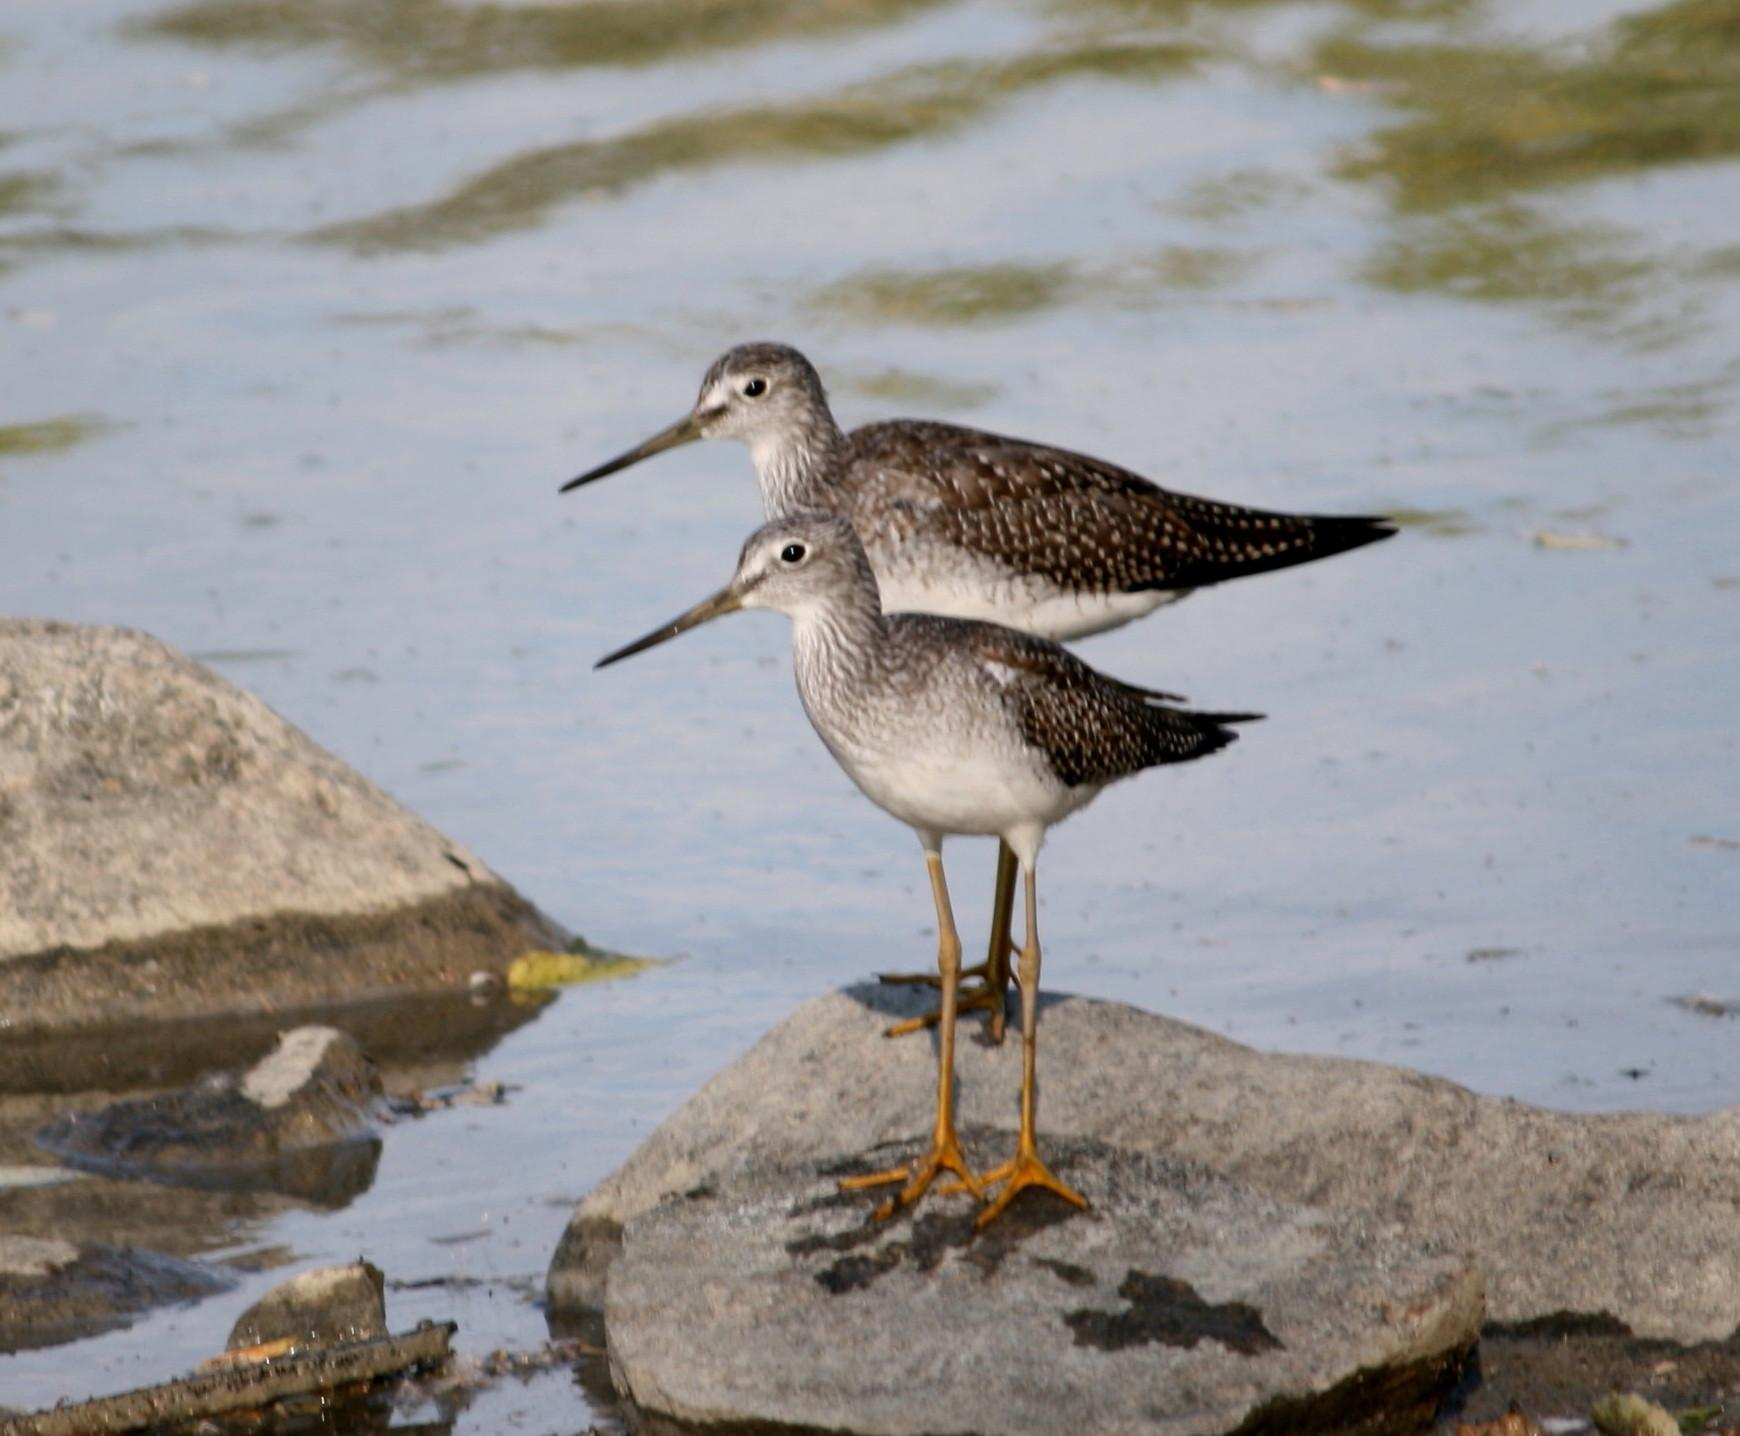 Greater Yellowlegs - Photo by Larry Trupp